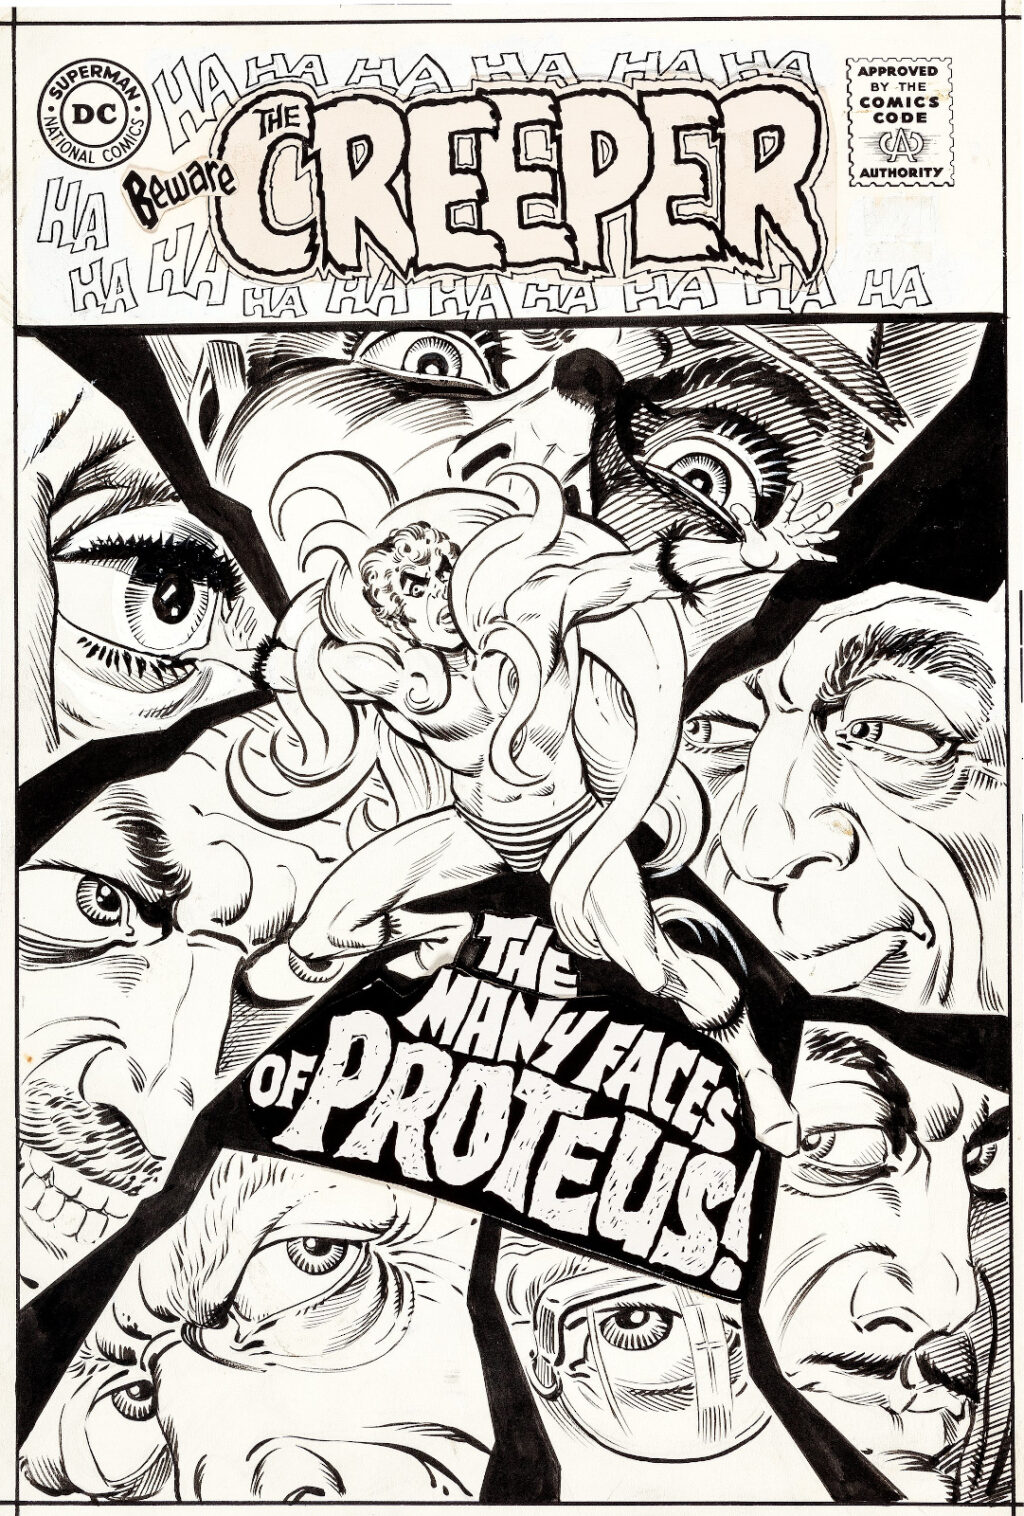 Beware the Creeper issue 2 cover by Steve Ditko